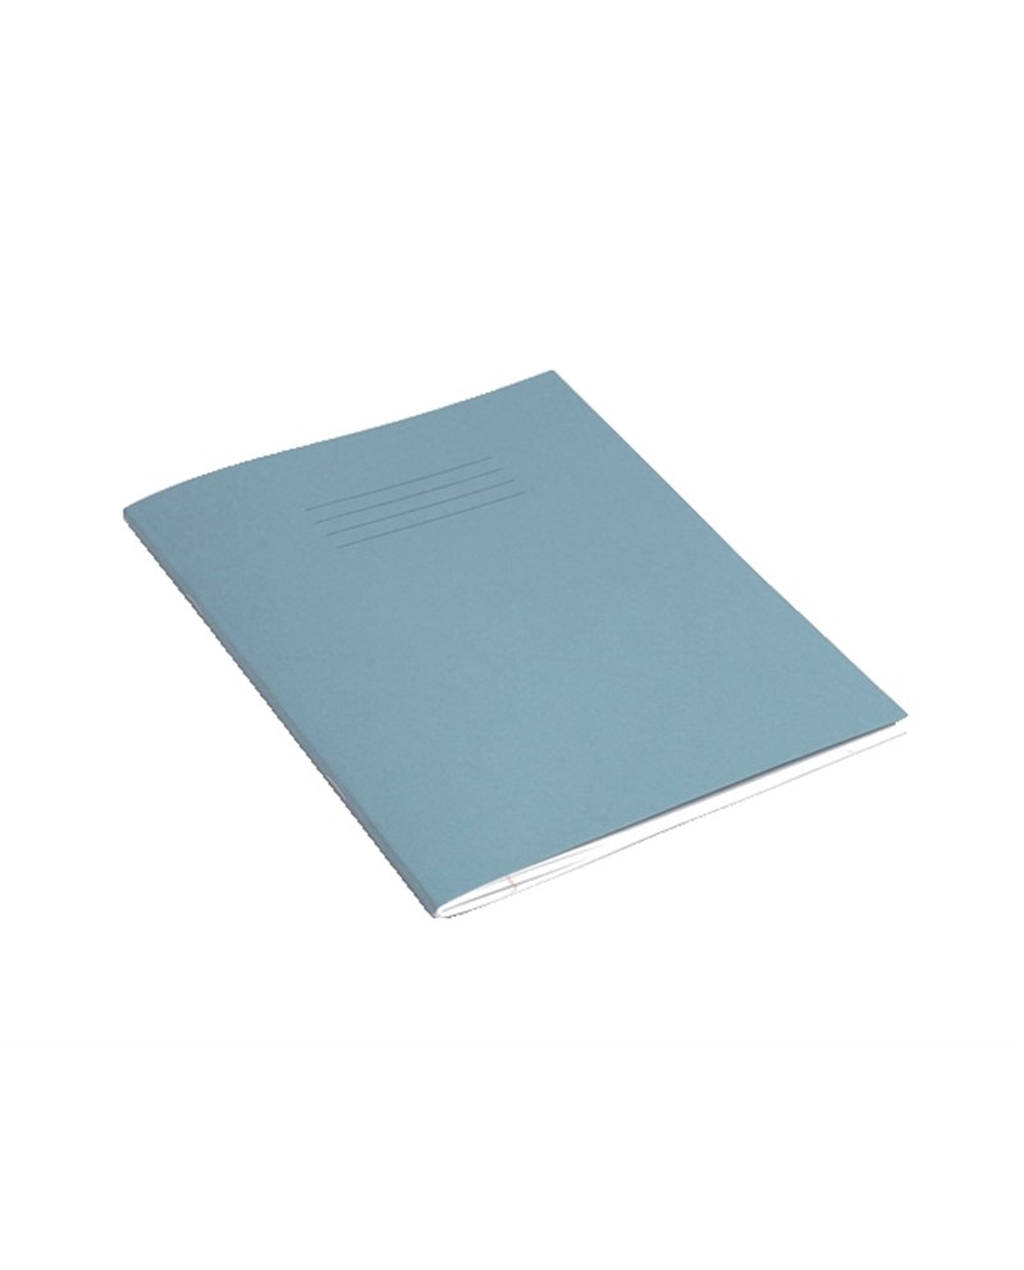 Exercise Book 9 x 7 (229 x 178mm) Light Blue Cover 8mm Ruled & Margin 48 Pages